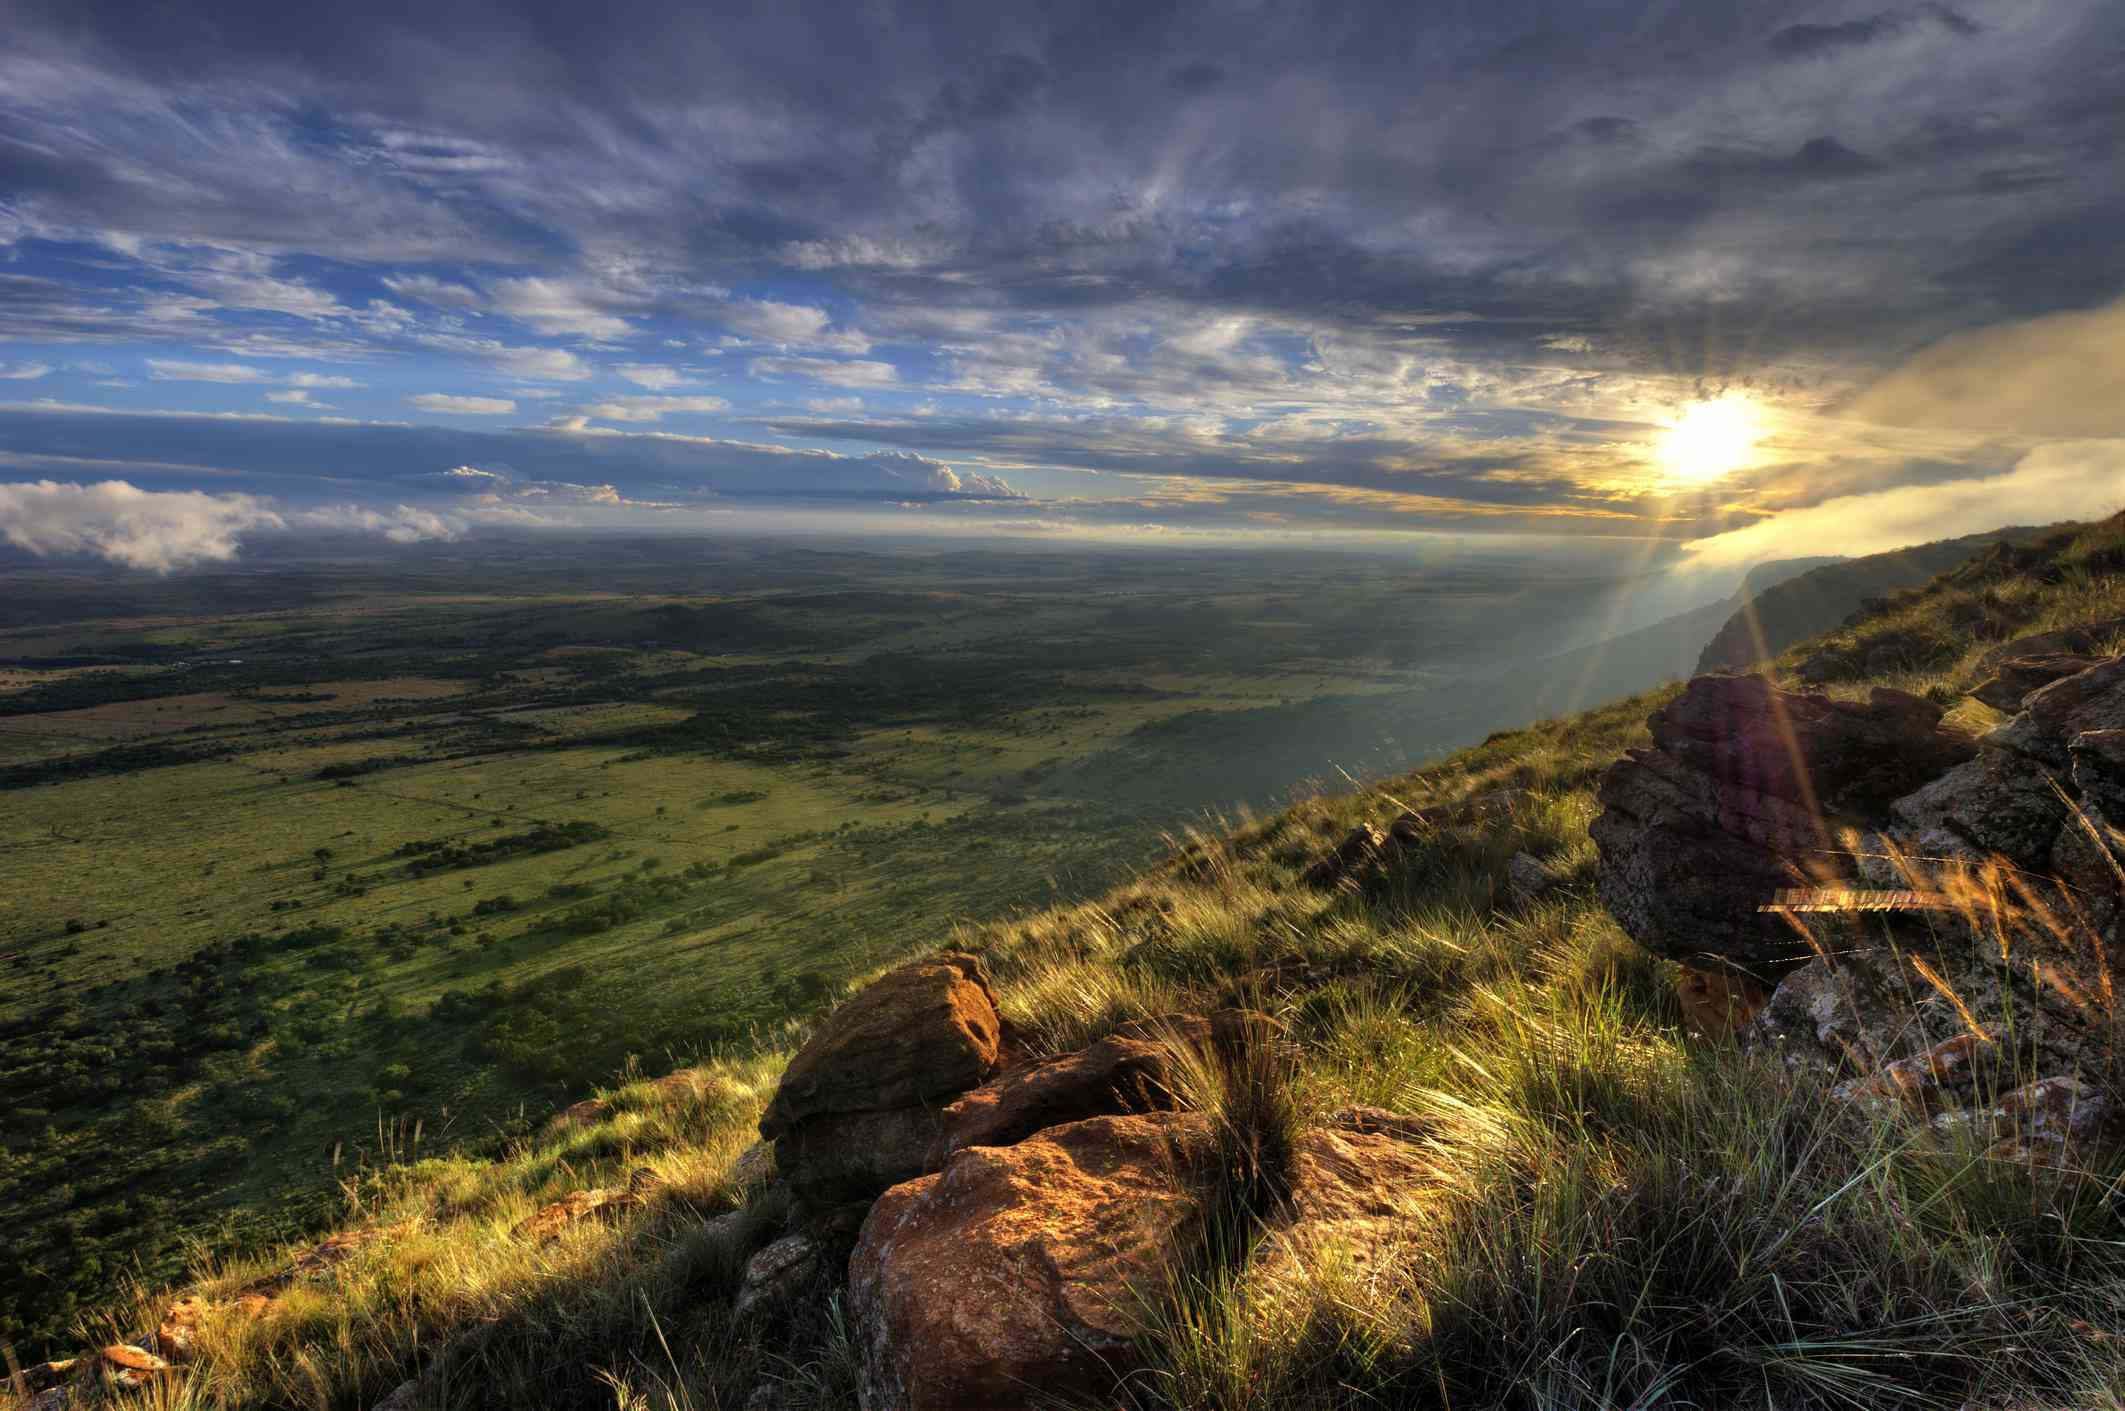 View over North West from Magaliesburg Mountains, South Africa